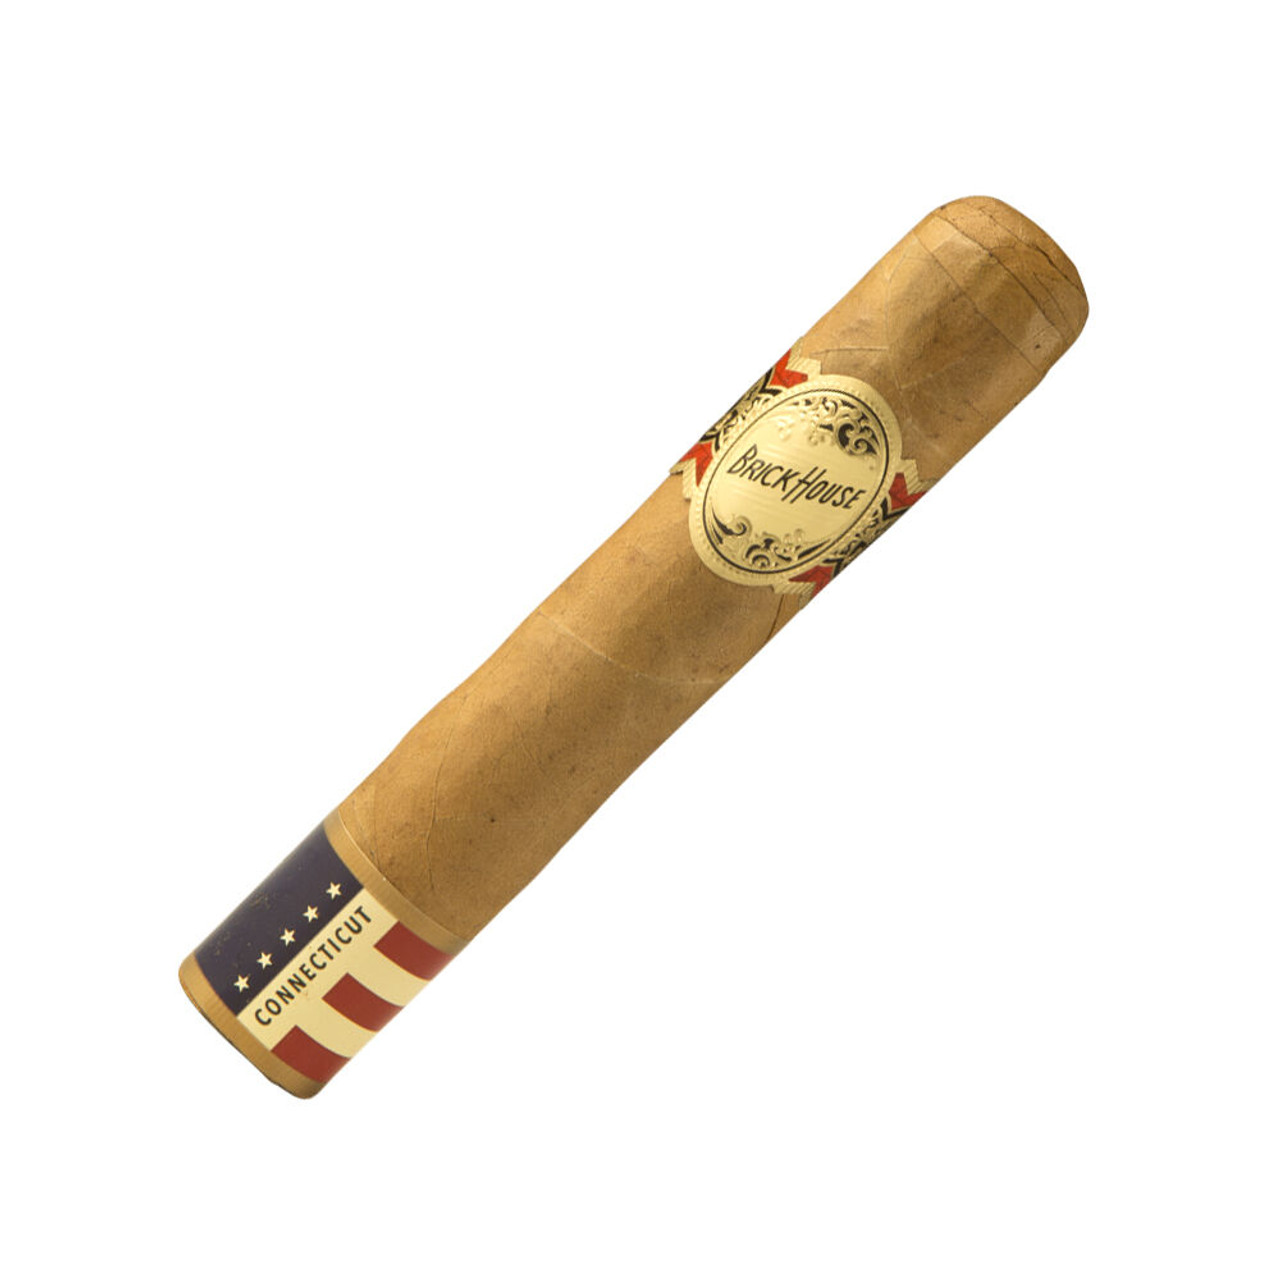 Brick House Double Connecticut Robusto Cigars - 5 x 54 (Box of 25)